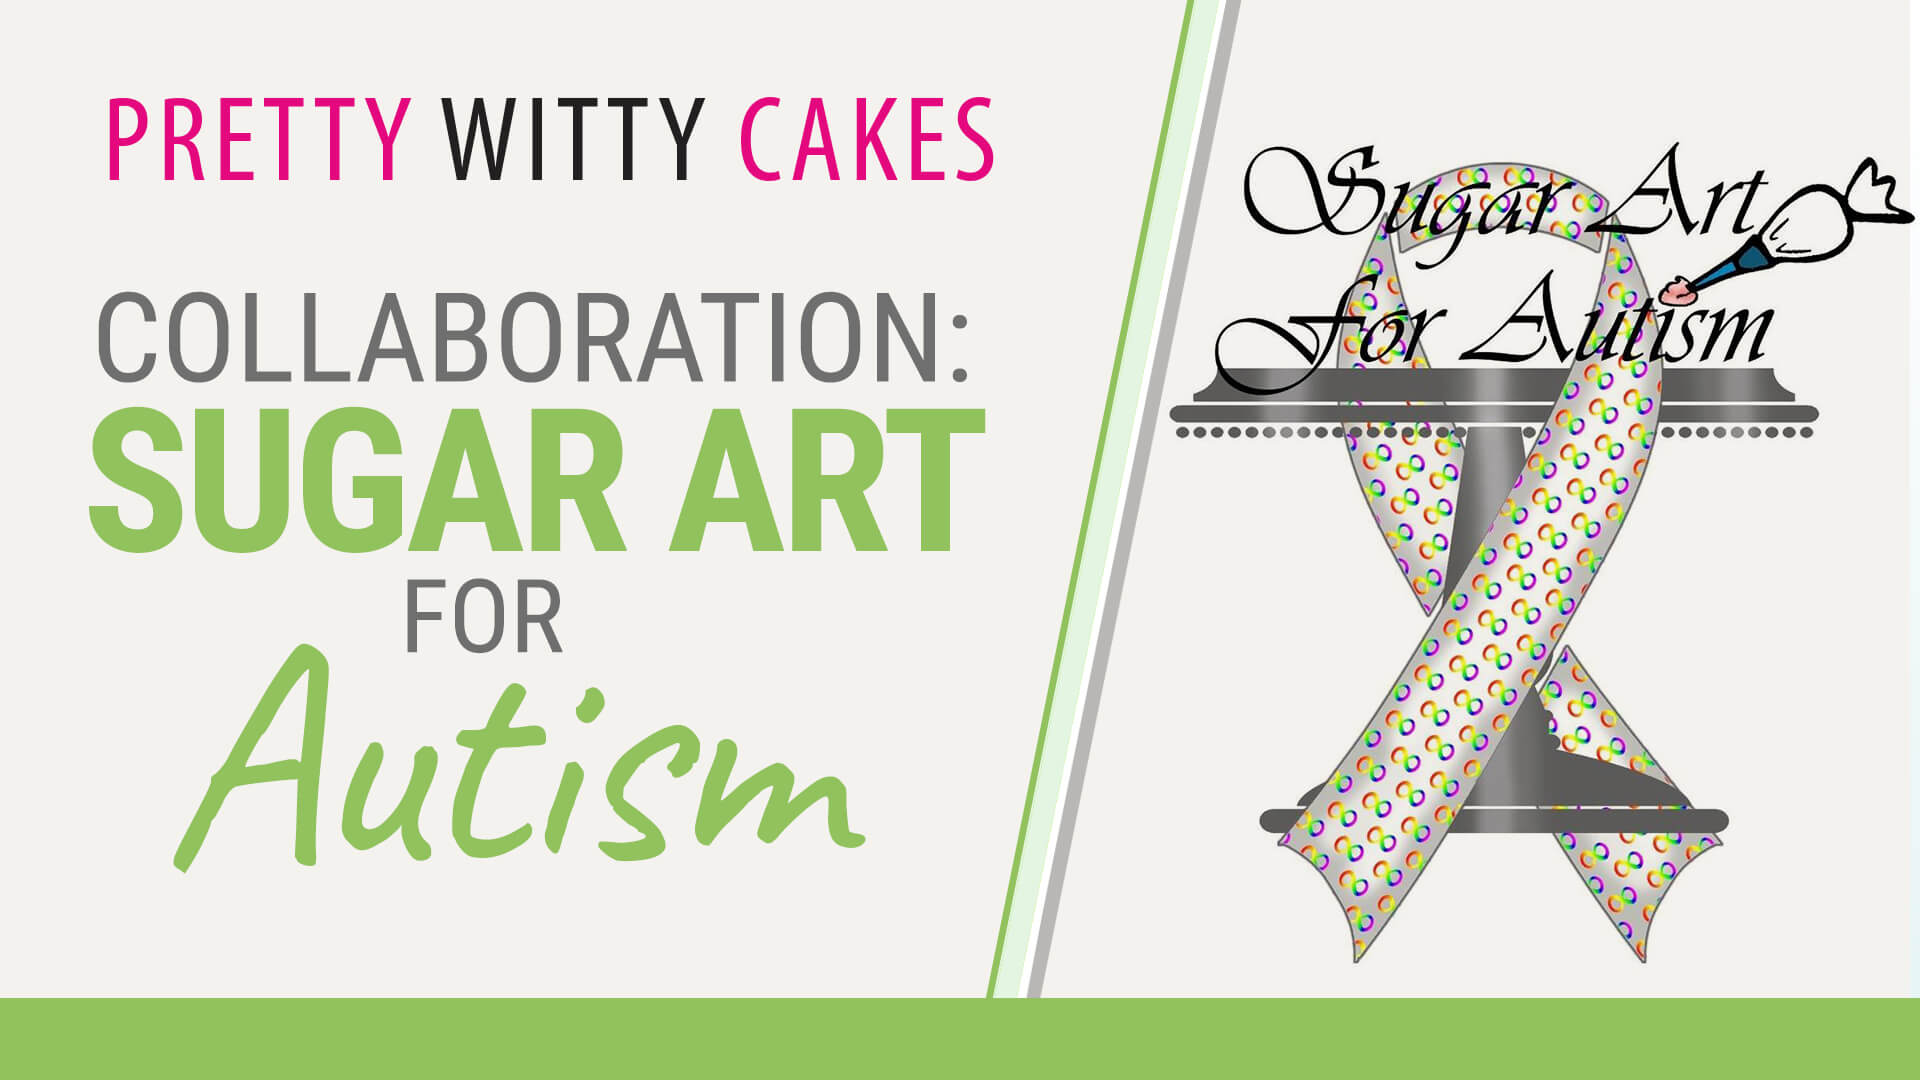 Collaboration: Sugar Art for Autism